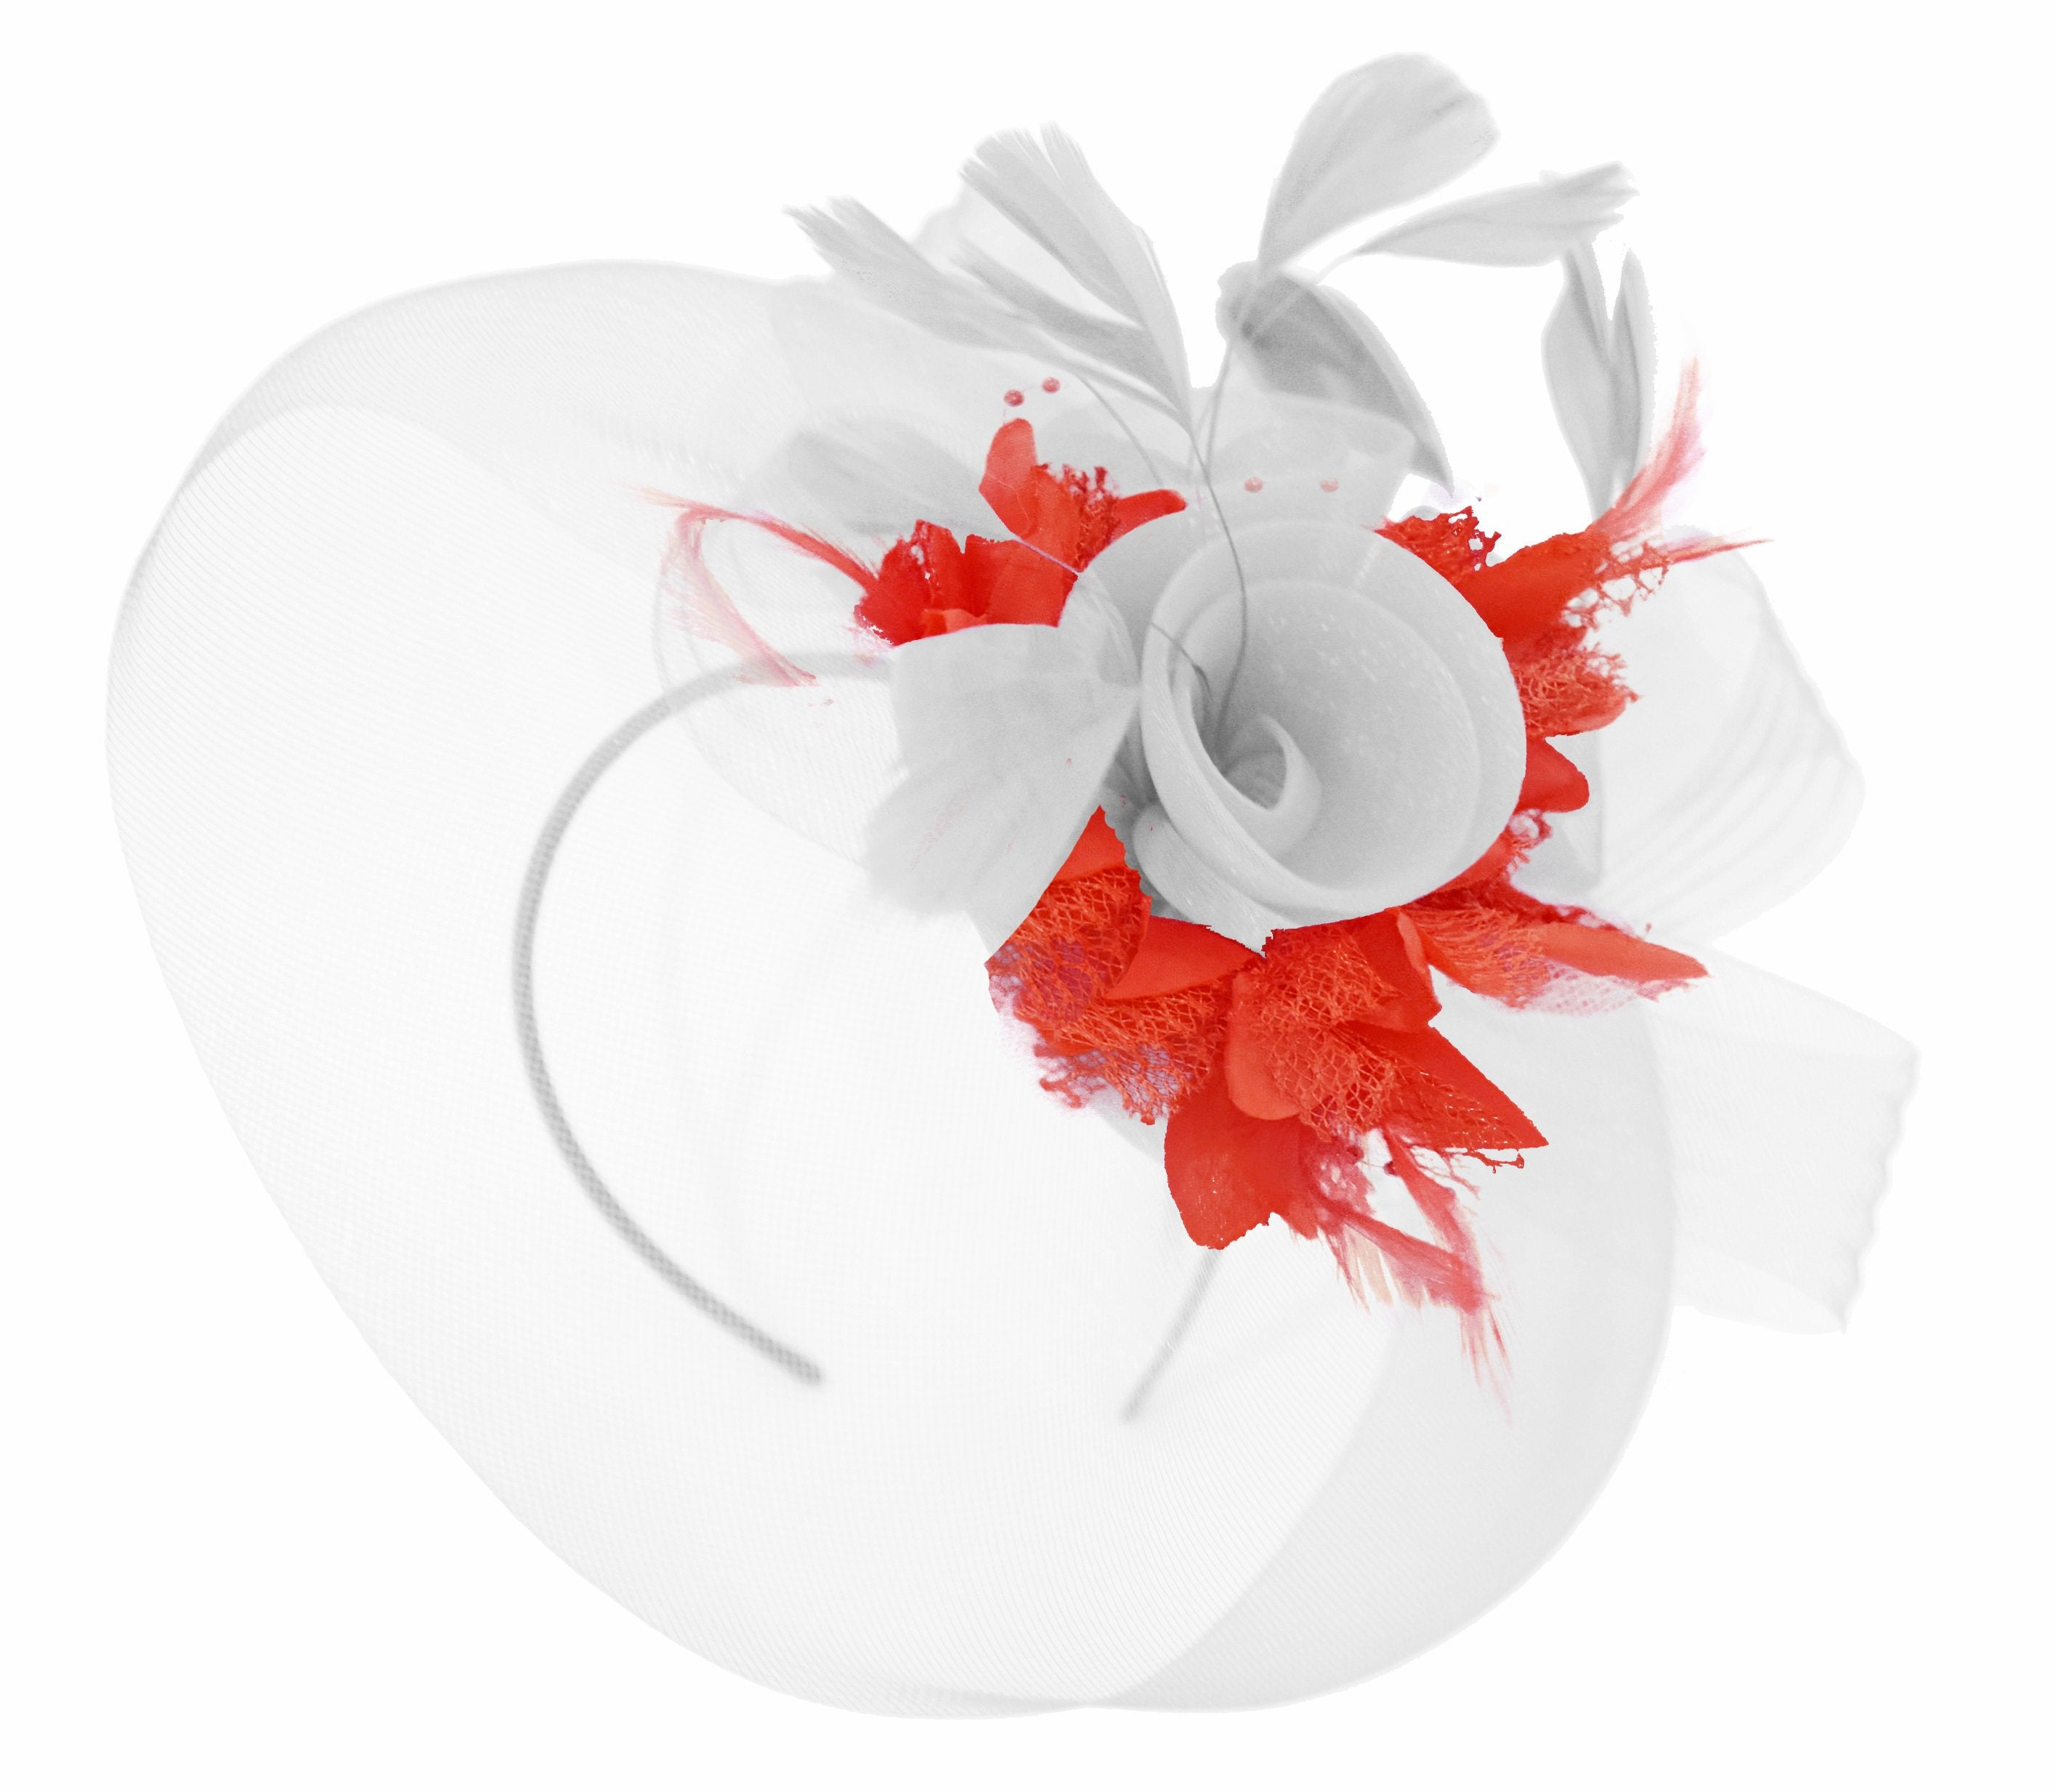 Caprilite White and Red Fascinator on Headband Veil UK Wedding Ascot Races Hatinator